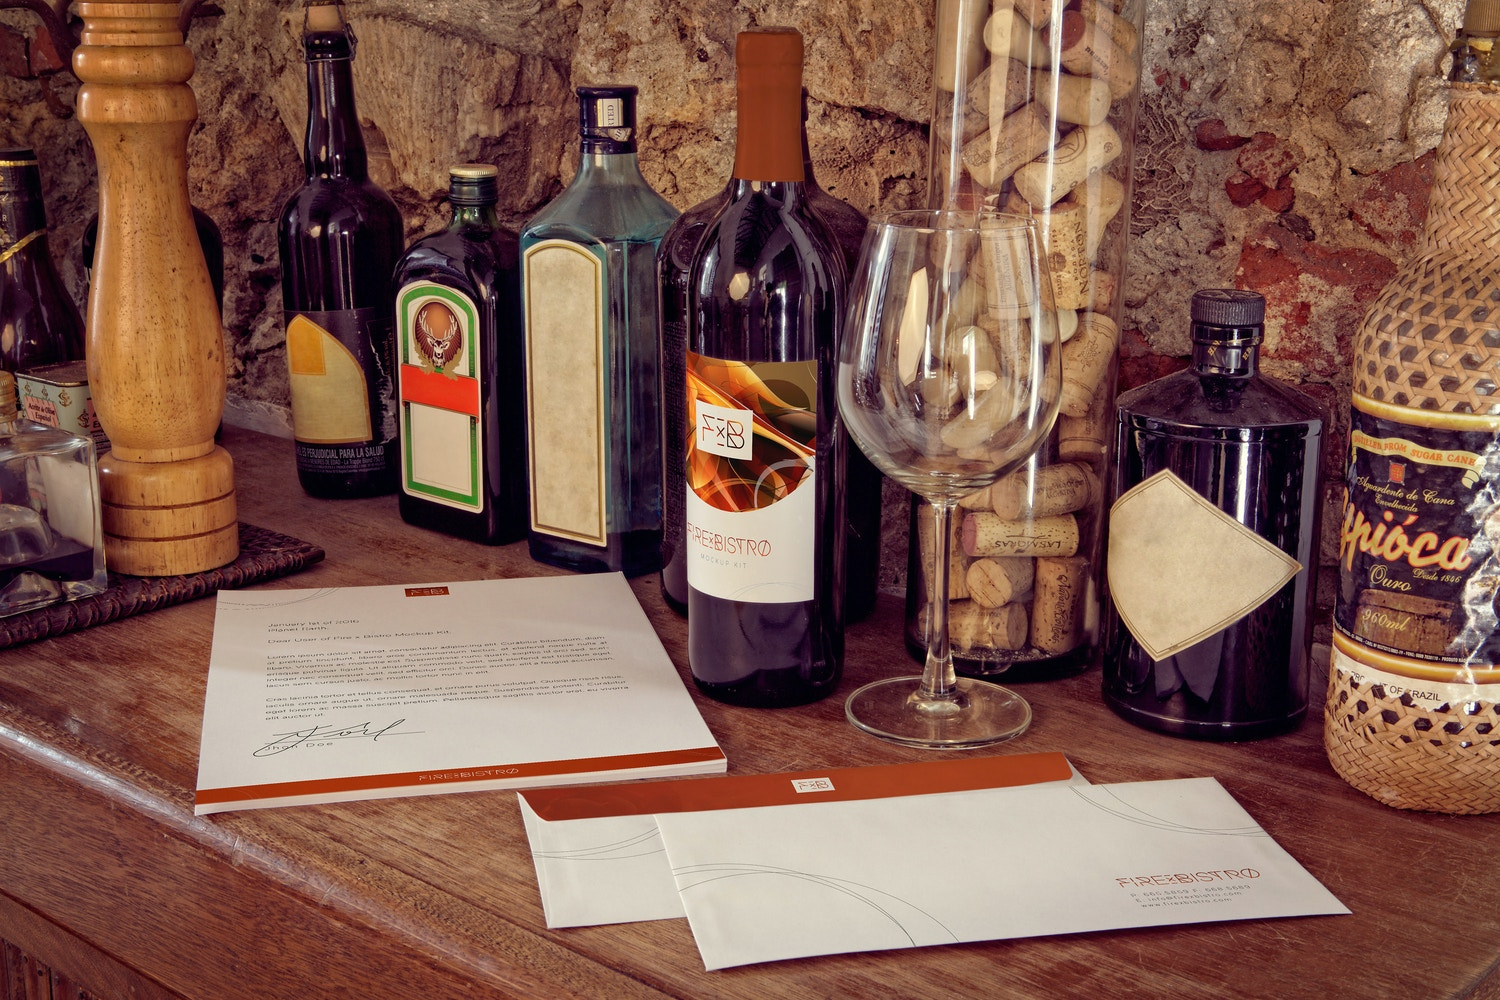 Letterhead, Wine Bottle, Envelope Mockup by 4to Pixel on Original Mockups